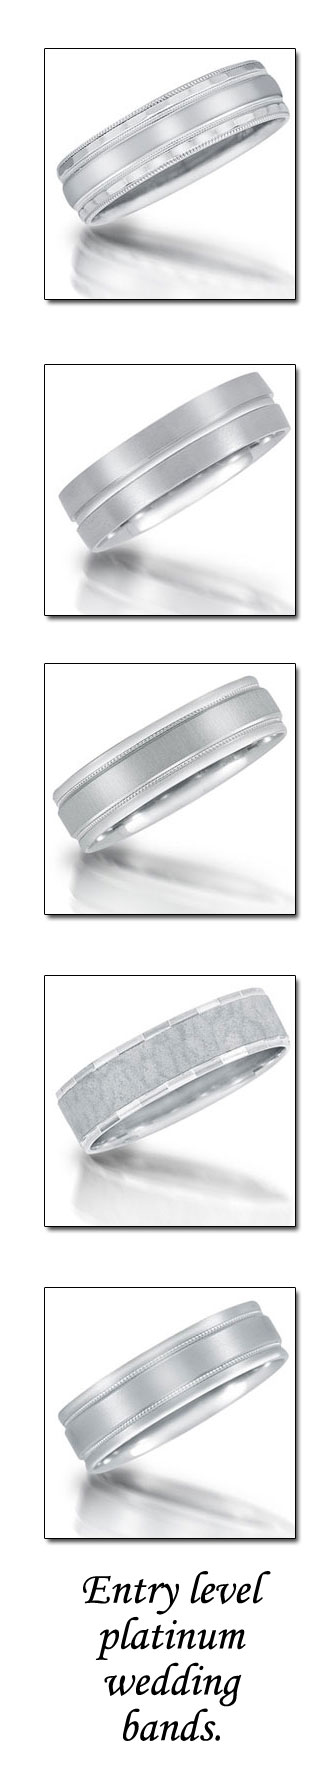 Platinum wedding bands by Novell entry level